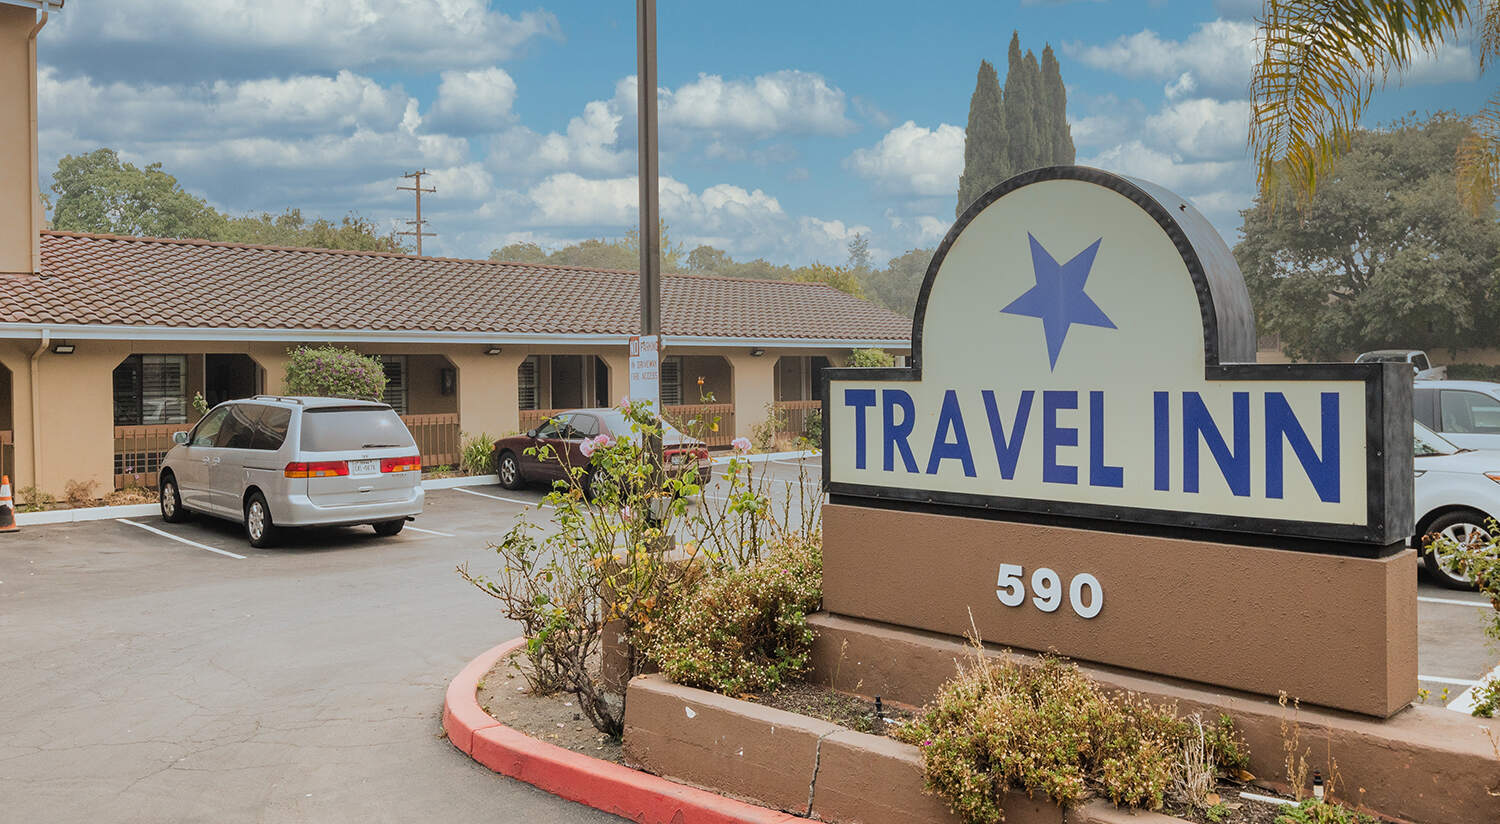 WELCOME TO THE TRAVEL INN SUNNYVALE OFFERING AFFORDABLE LODGING AND EXTENDED STAY IN THE HEART OF SILICON VALLEY